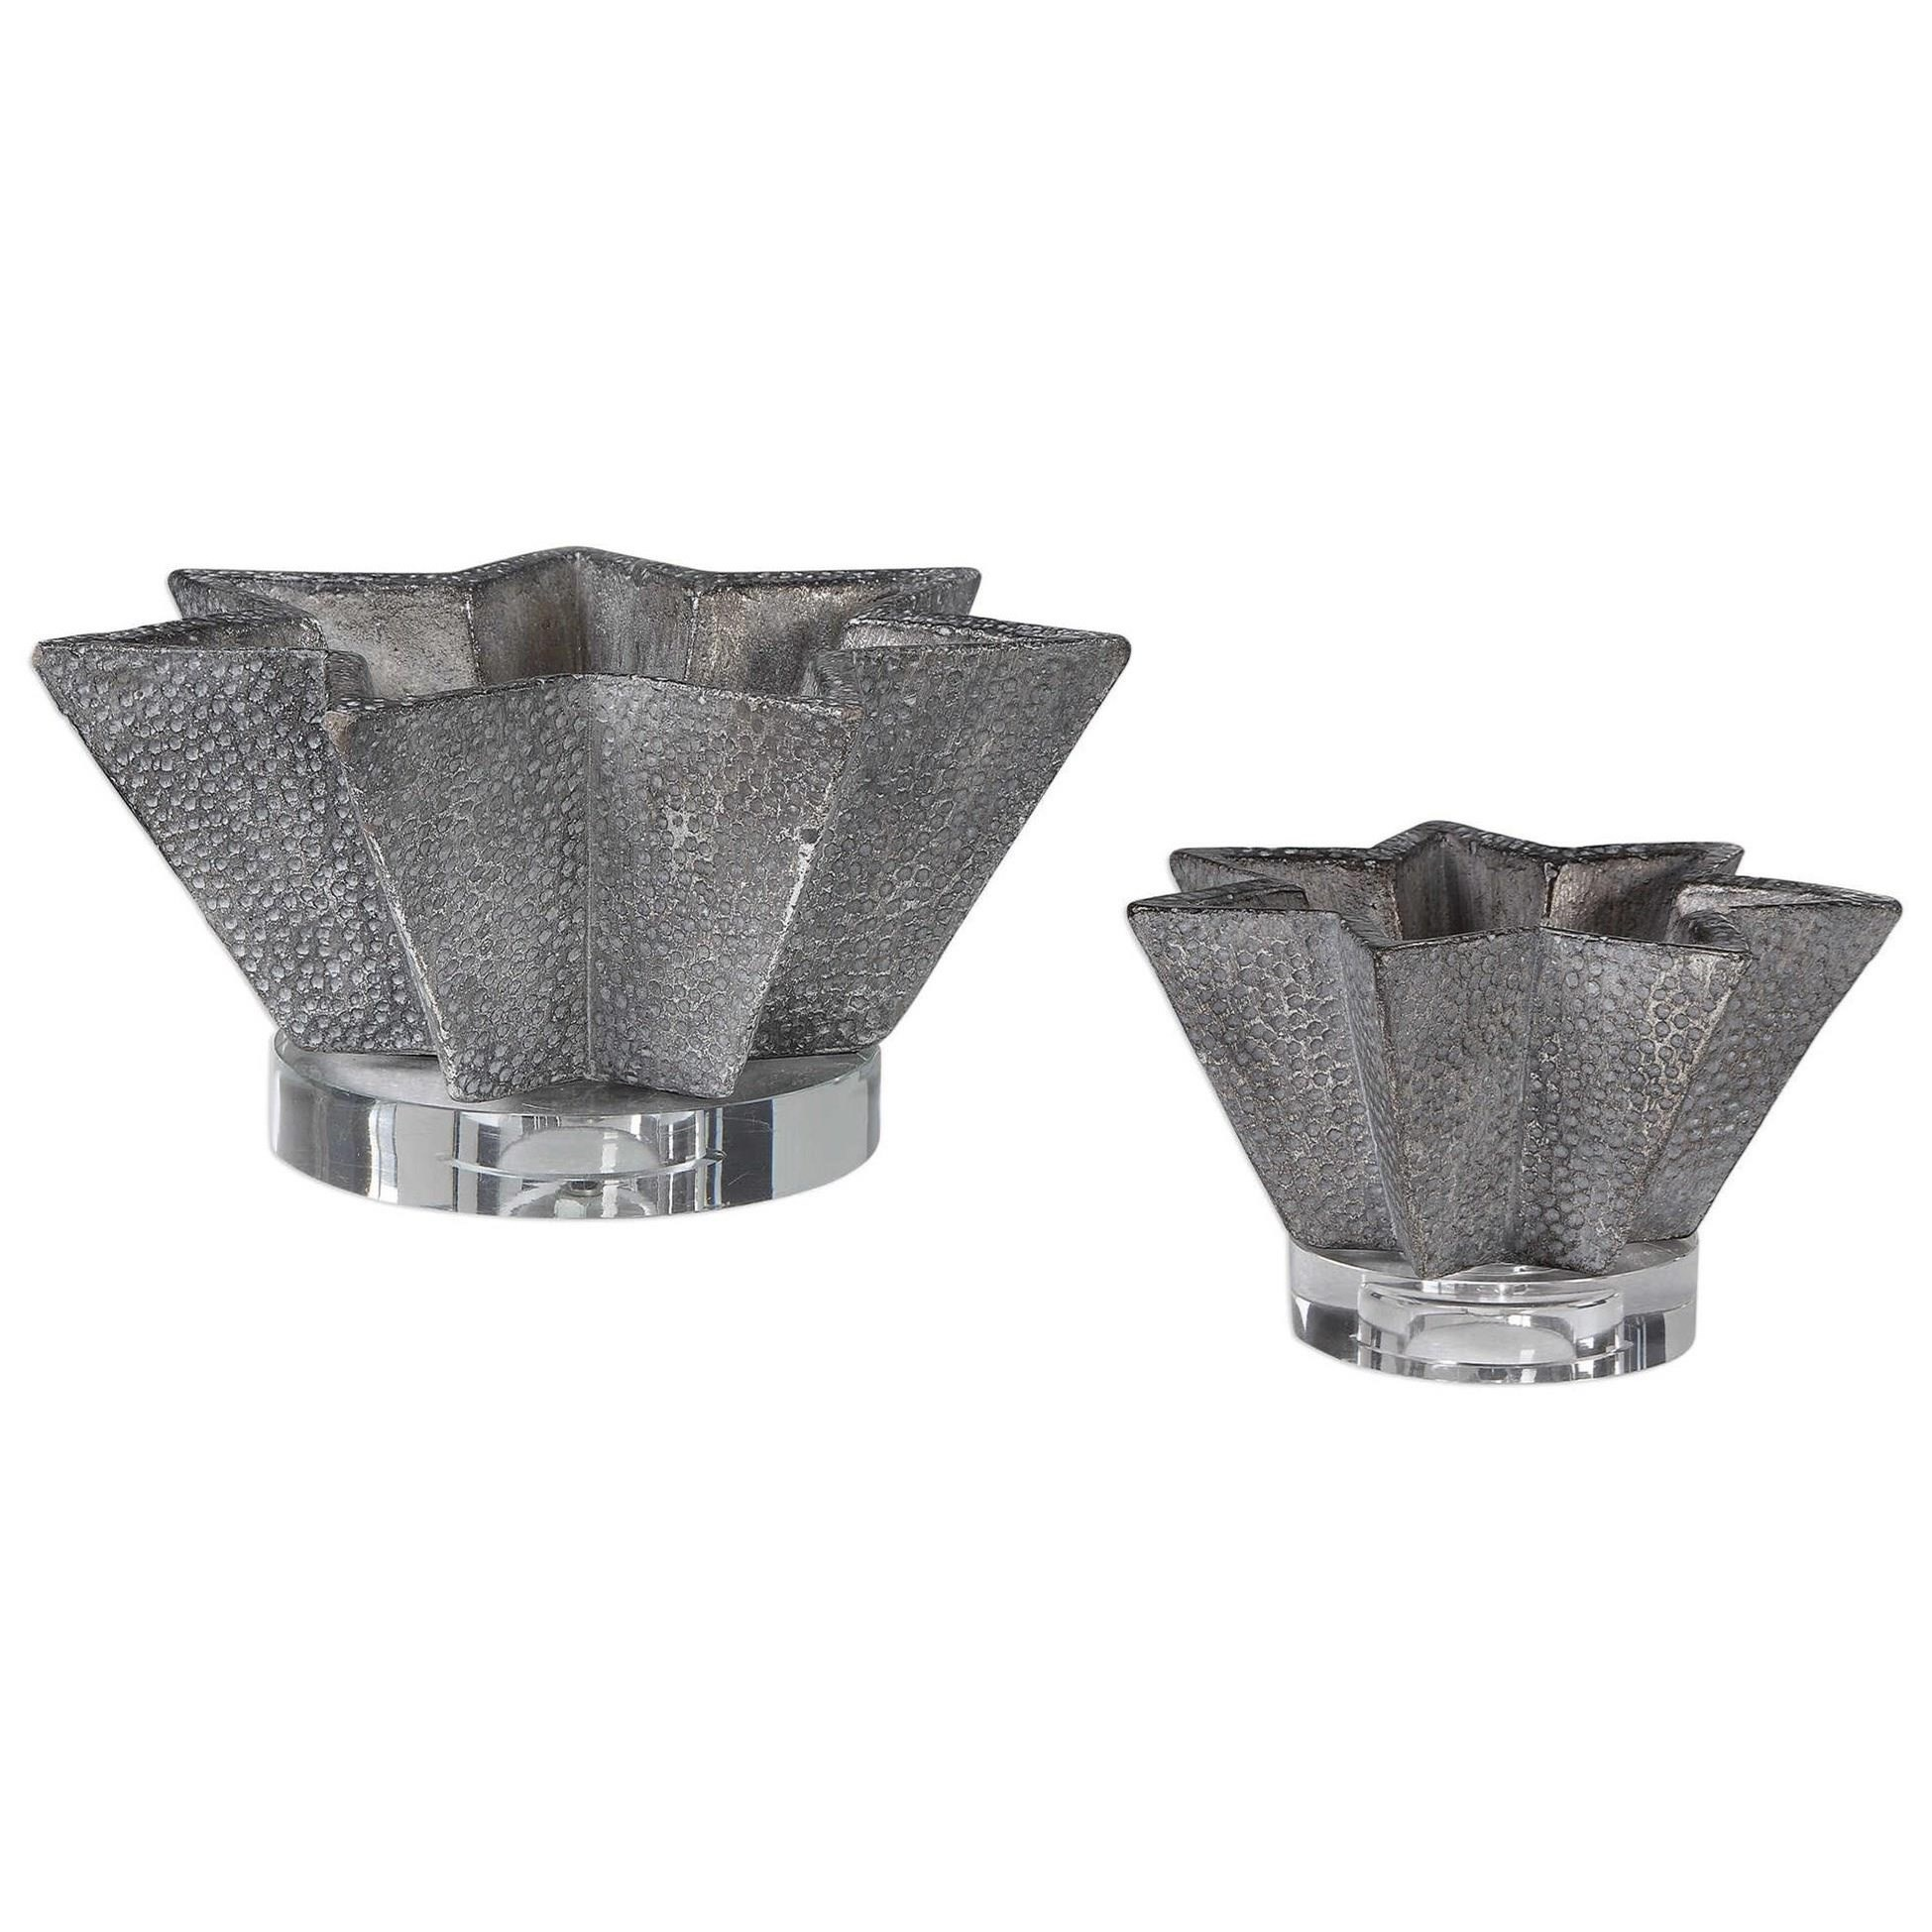 Accessories Kayden Star-Shaped Bowls (Set of 2) by Uttermost at Upper Room Home Furnishings